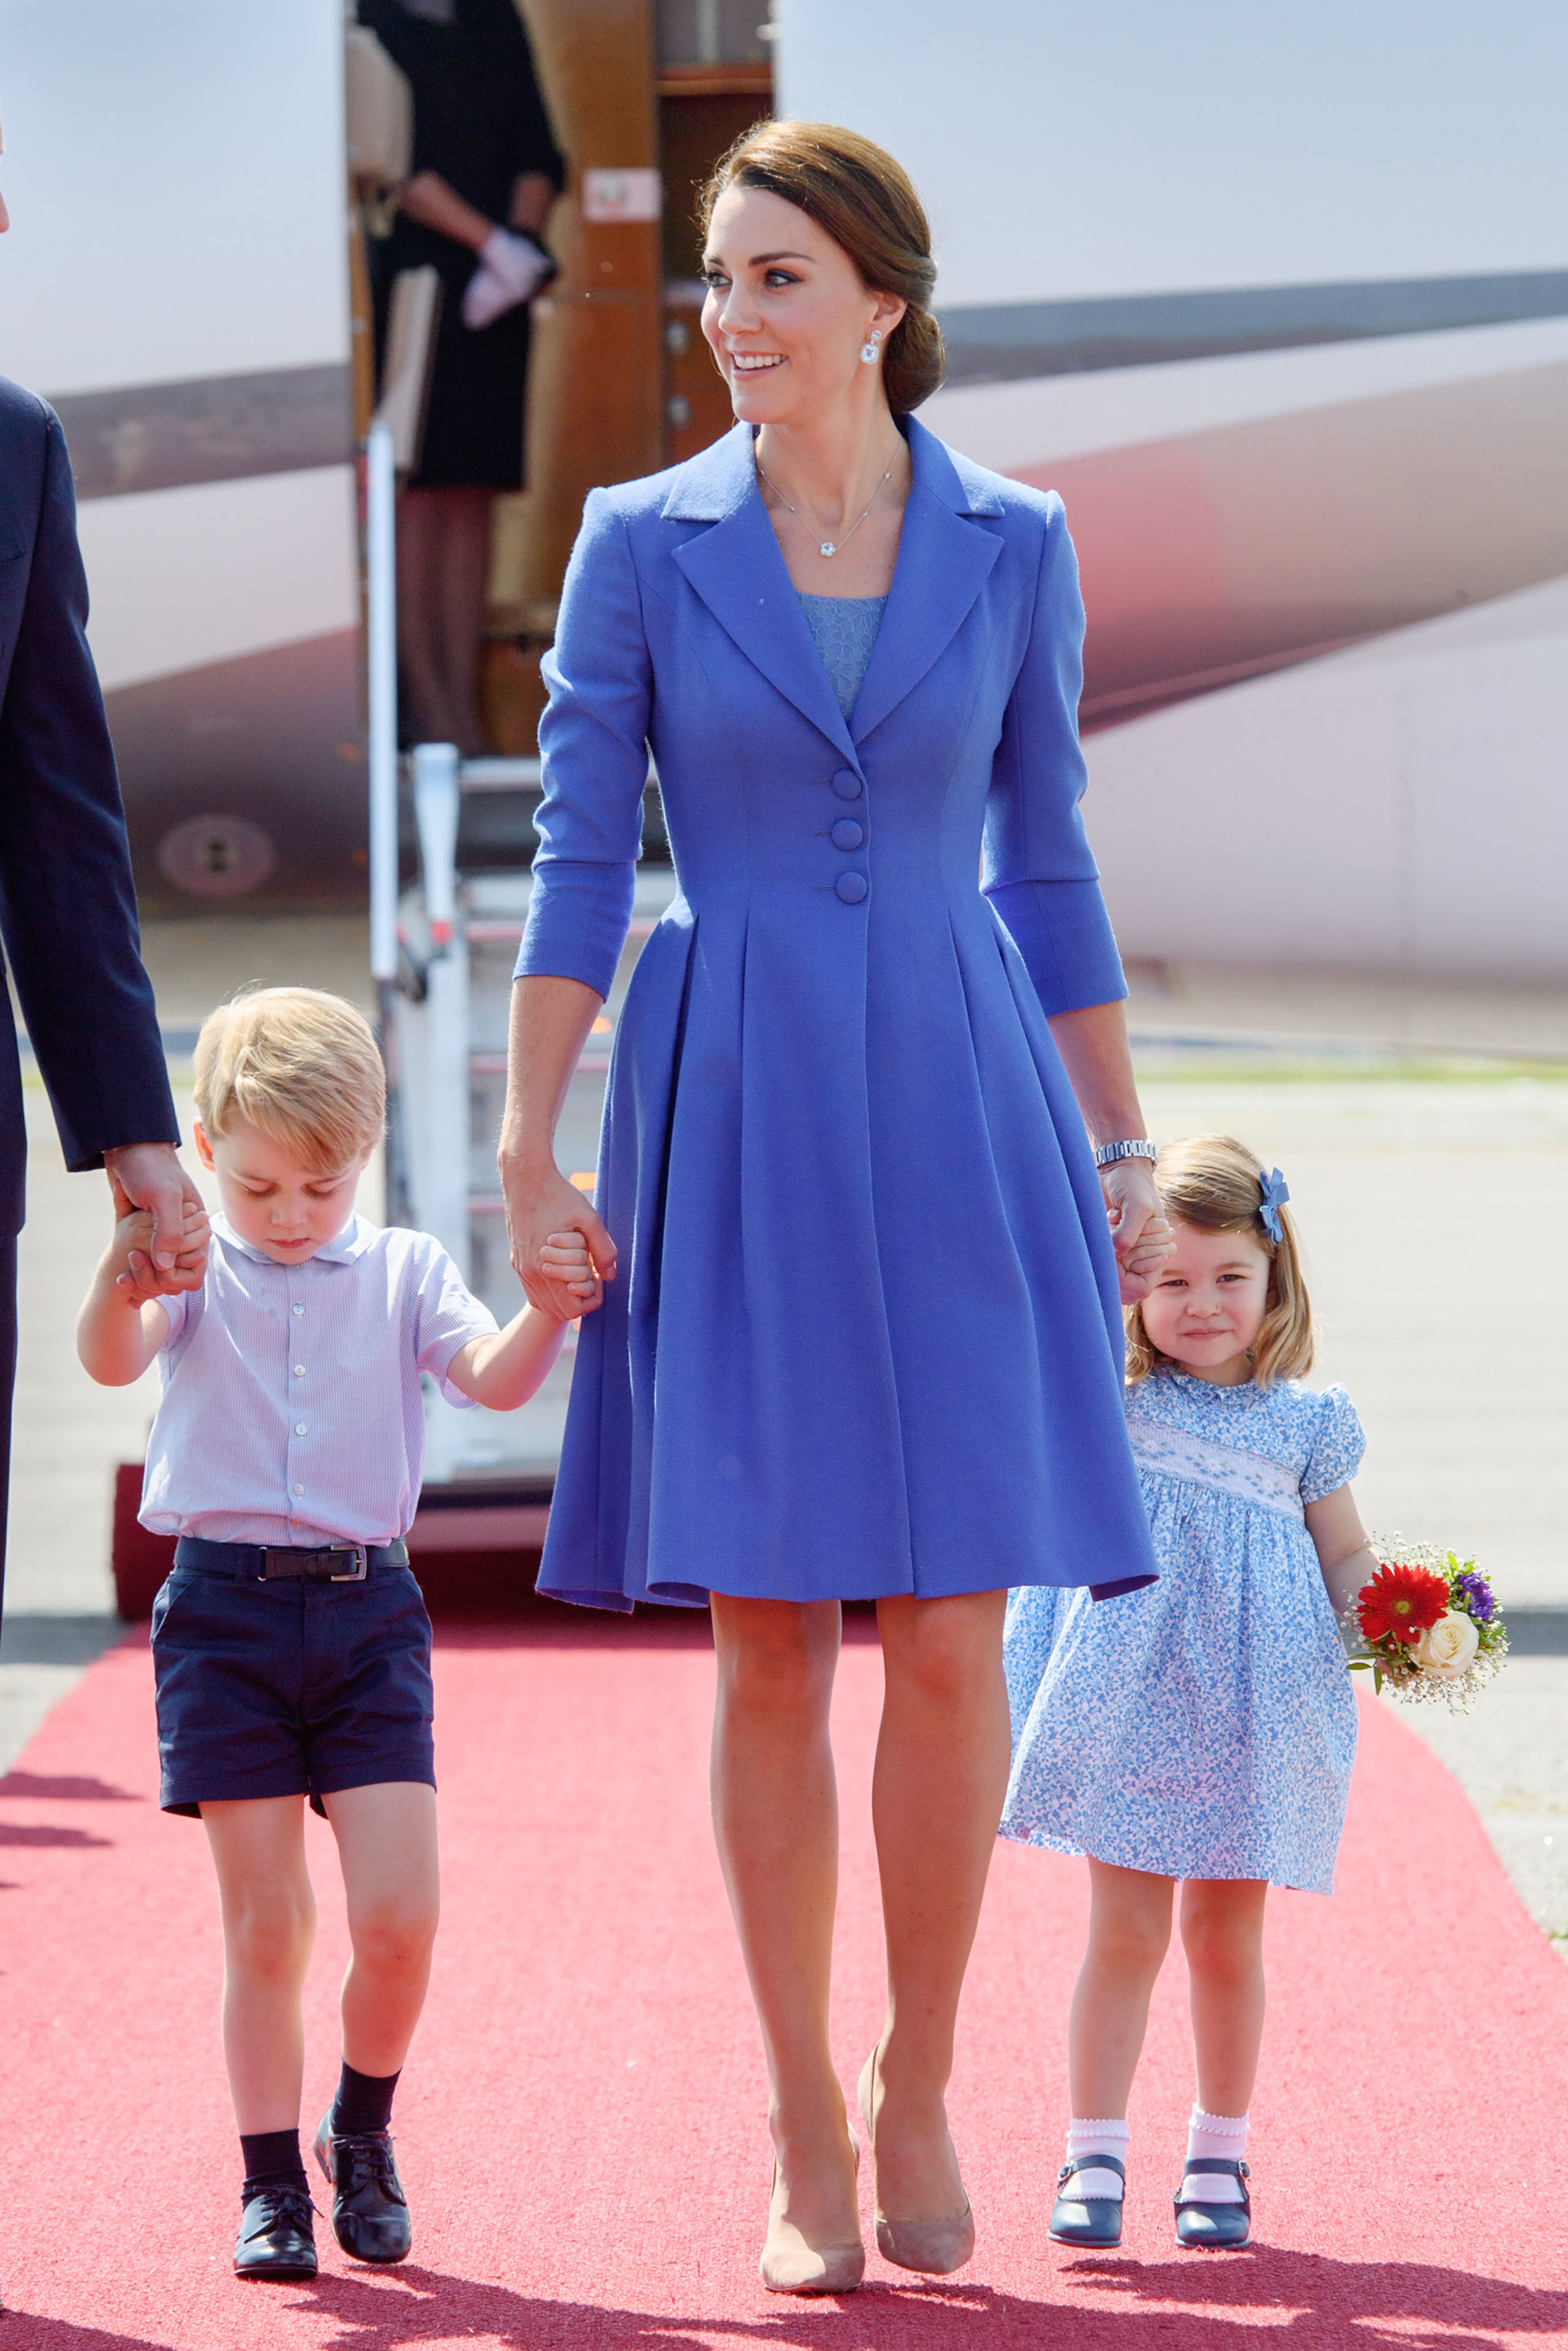 Catherine, Duchess of Cambridge, Prince George of Cambridge and Princess Charlotte of Cambridge arrive at Berlin military airport during an official visit to Poland and Germany on July 19, 2017.